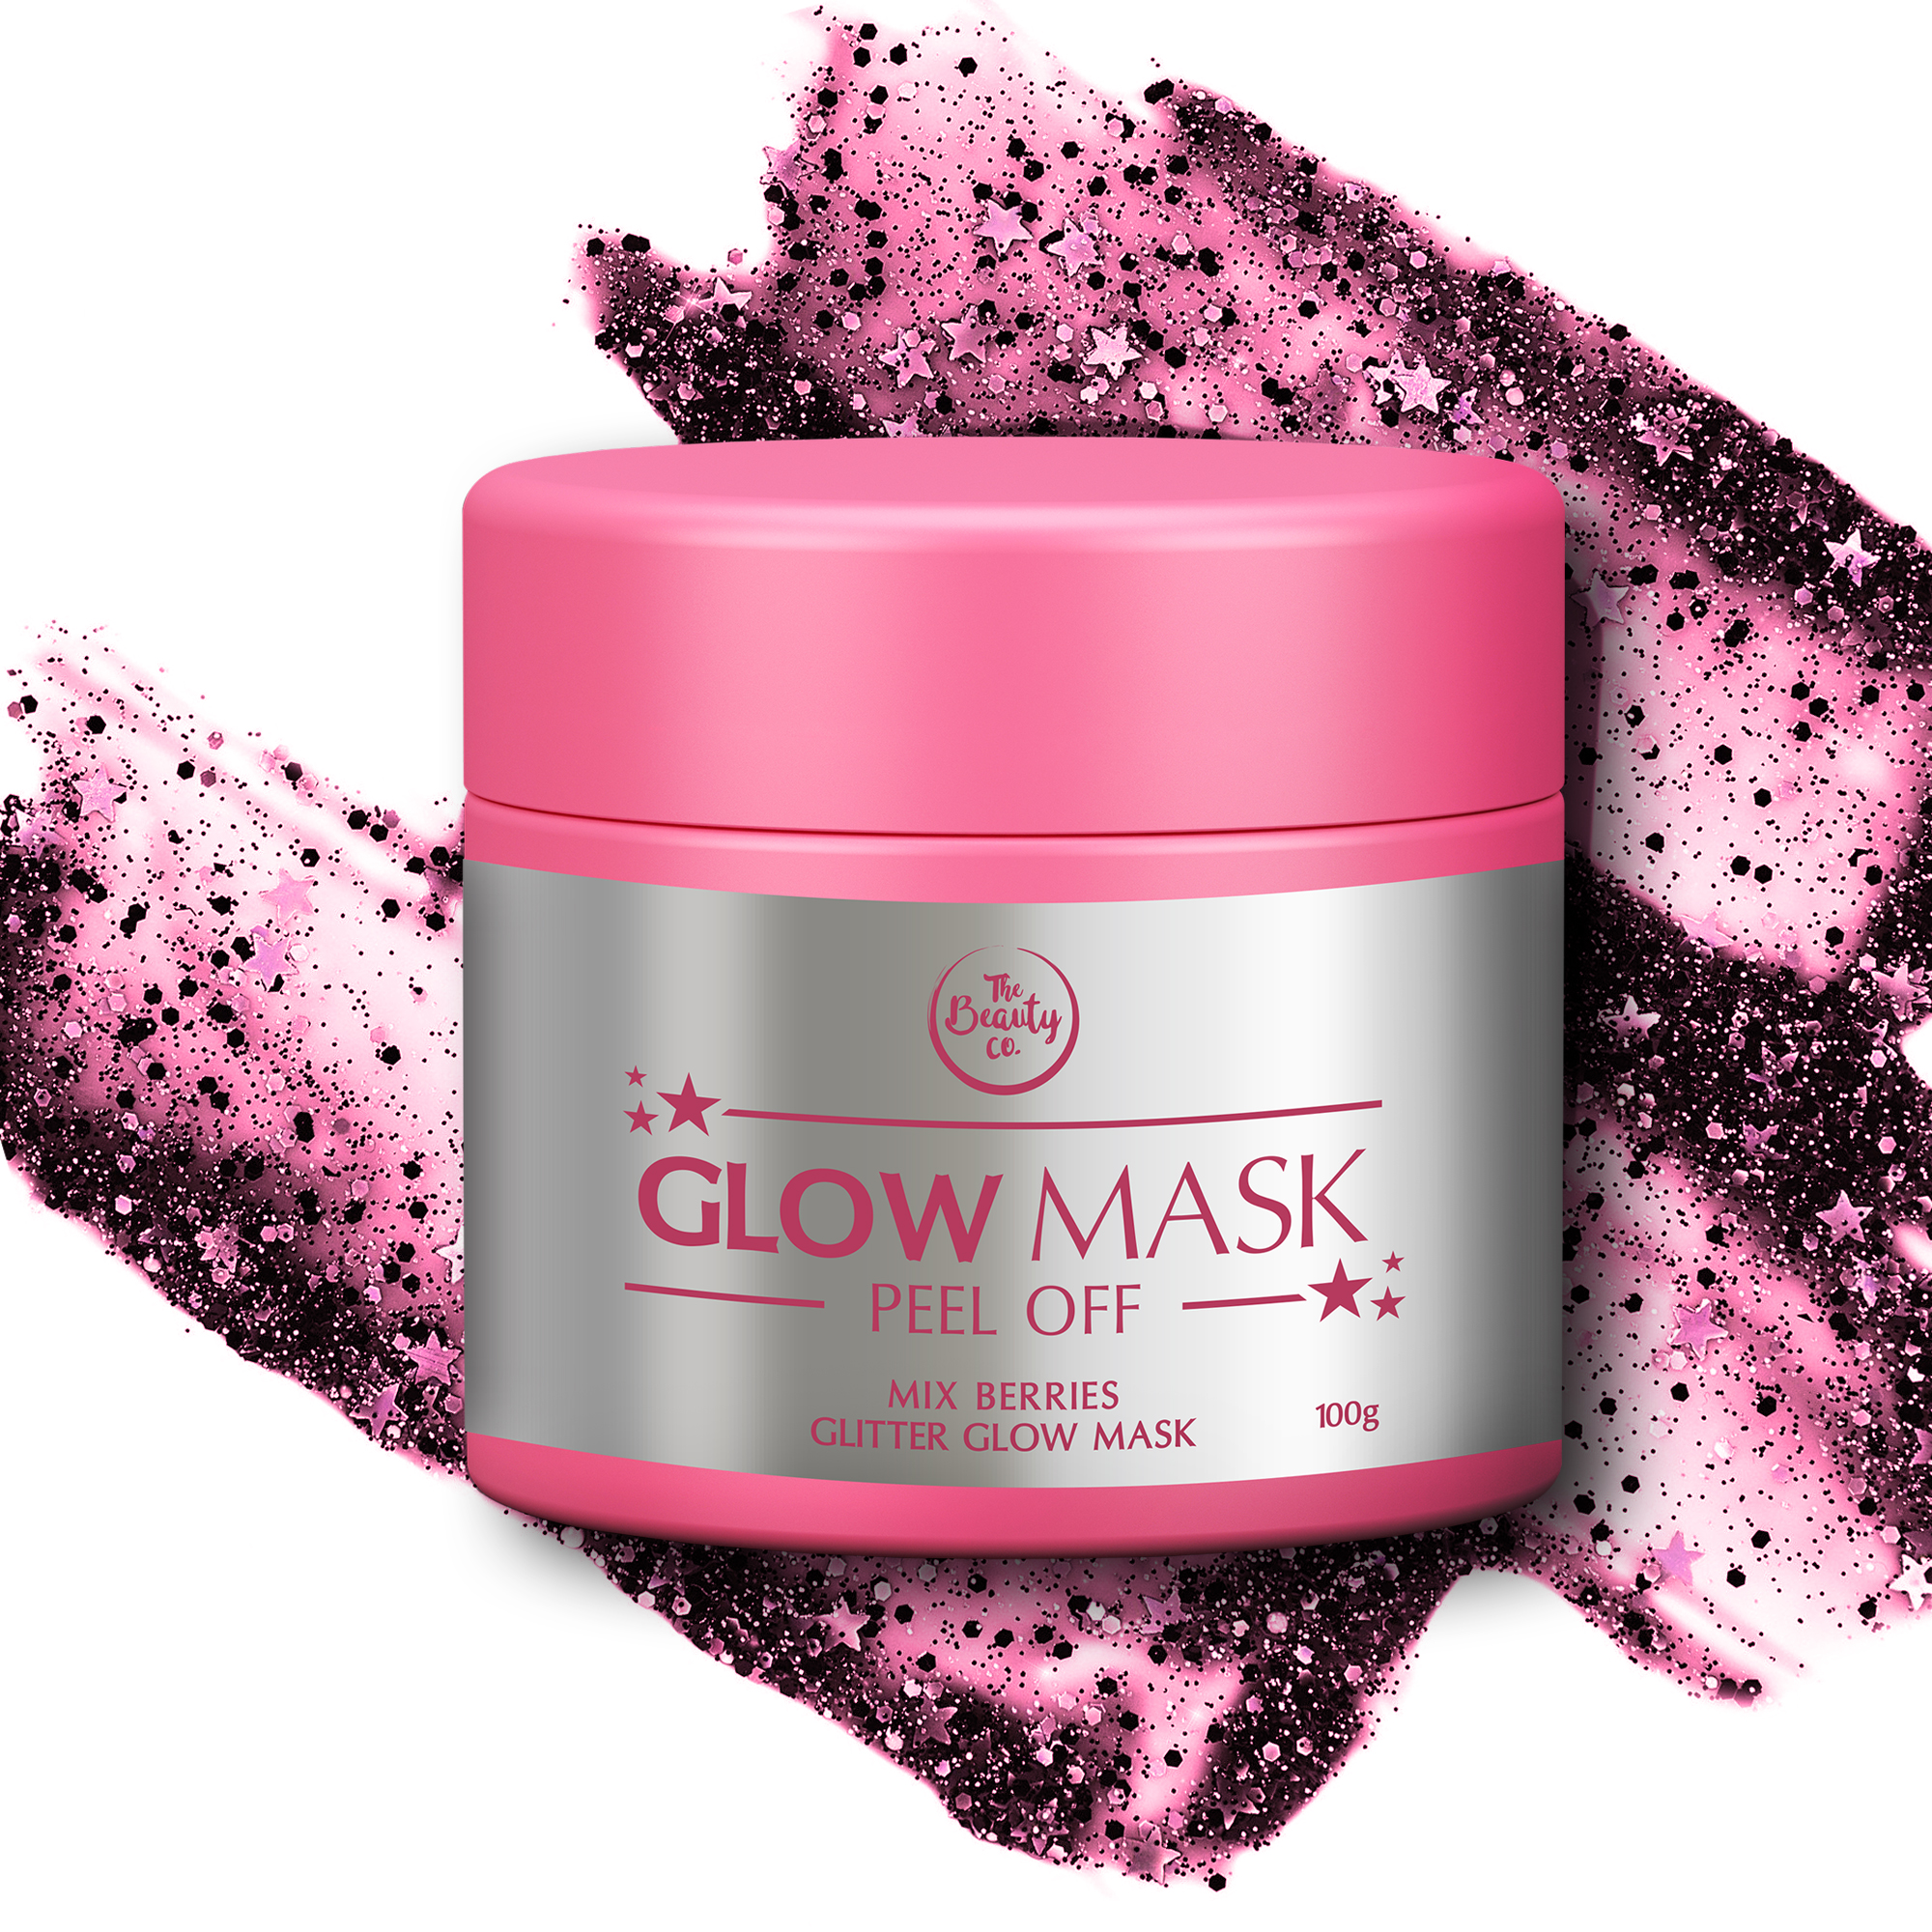 The Beauty Co. Mix Berries Glitter Glow Mask_INR 899